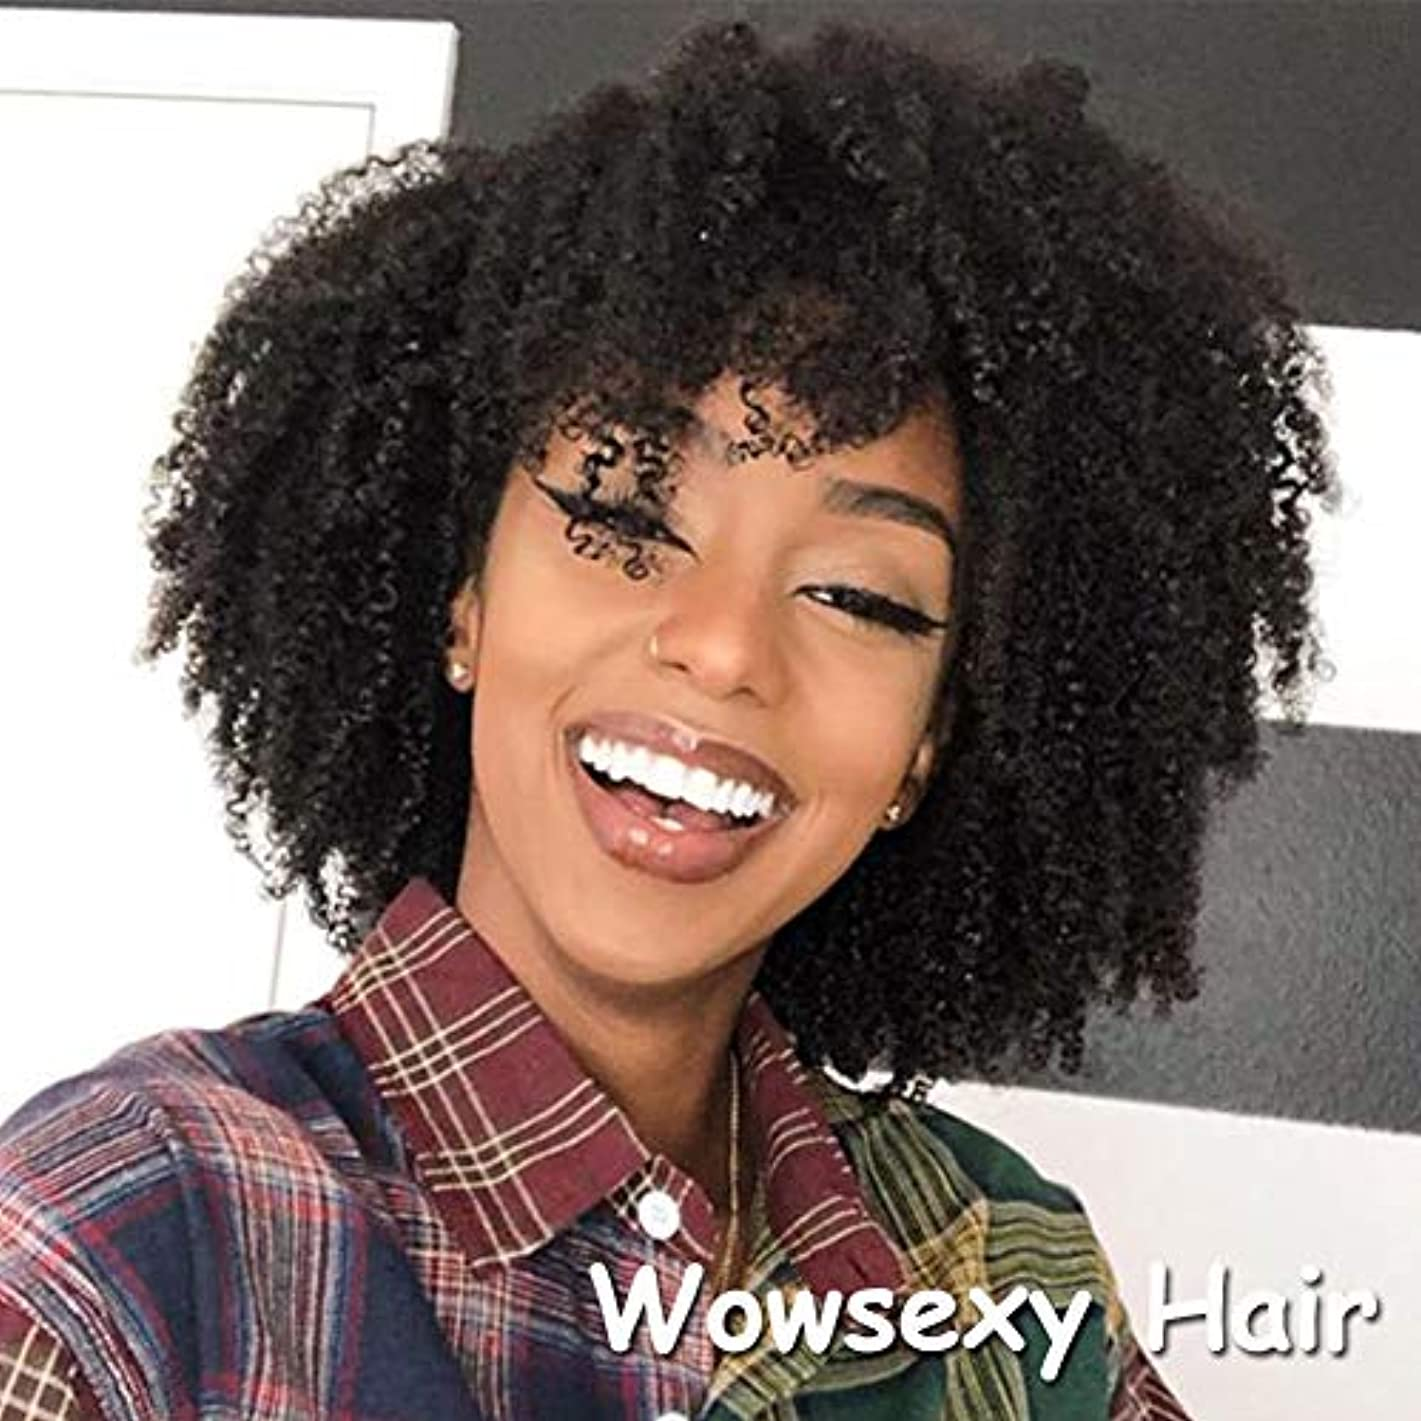 Wowsexy Hair 150% Density Afro Kinky Curly Full Lace Human Hair Wig Free Part Short Bob Brazilian Remy Lace Front Human Hair Wig Natural Color Glueless (10 inch, Lace Front Wig)